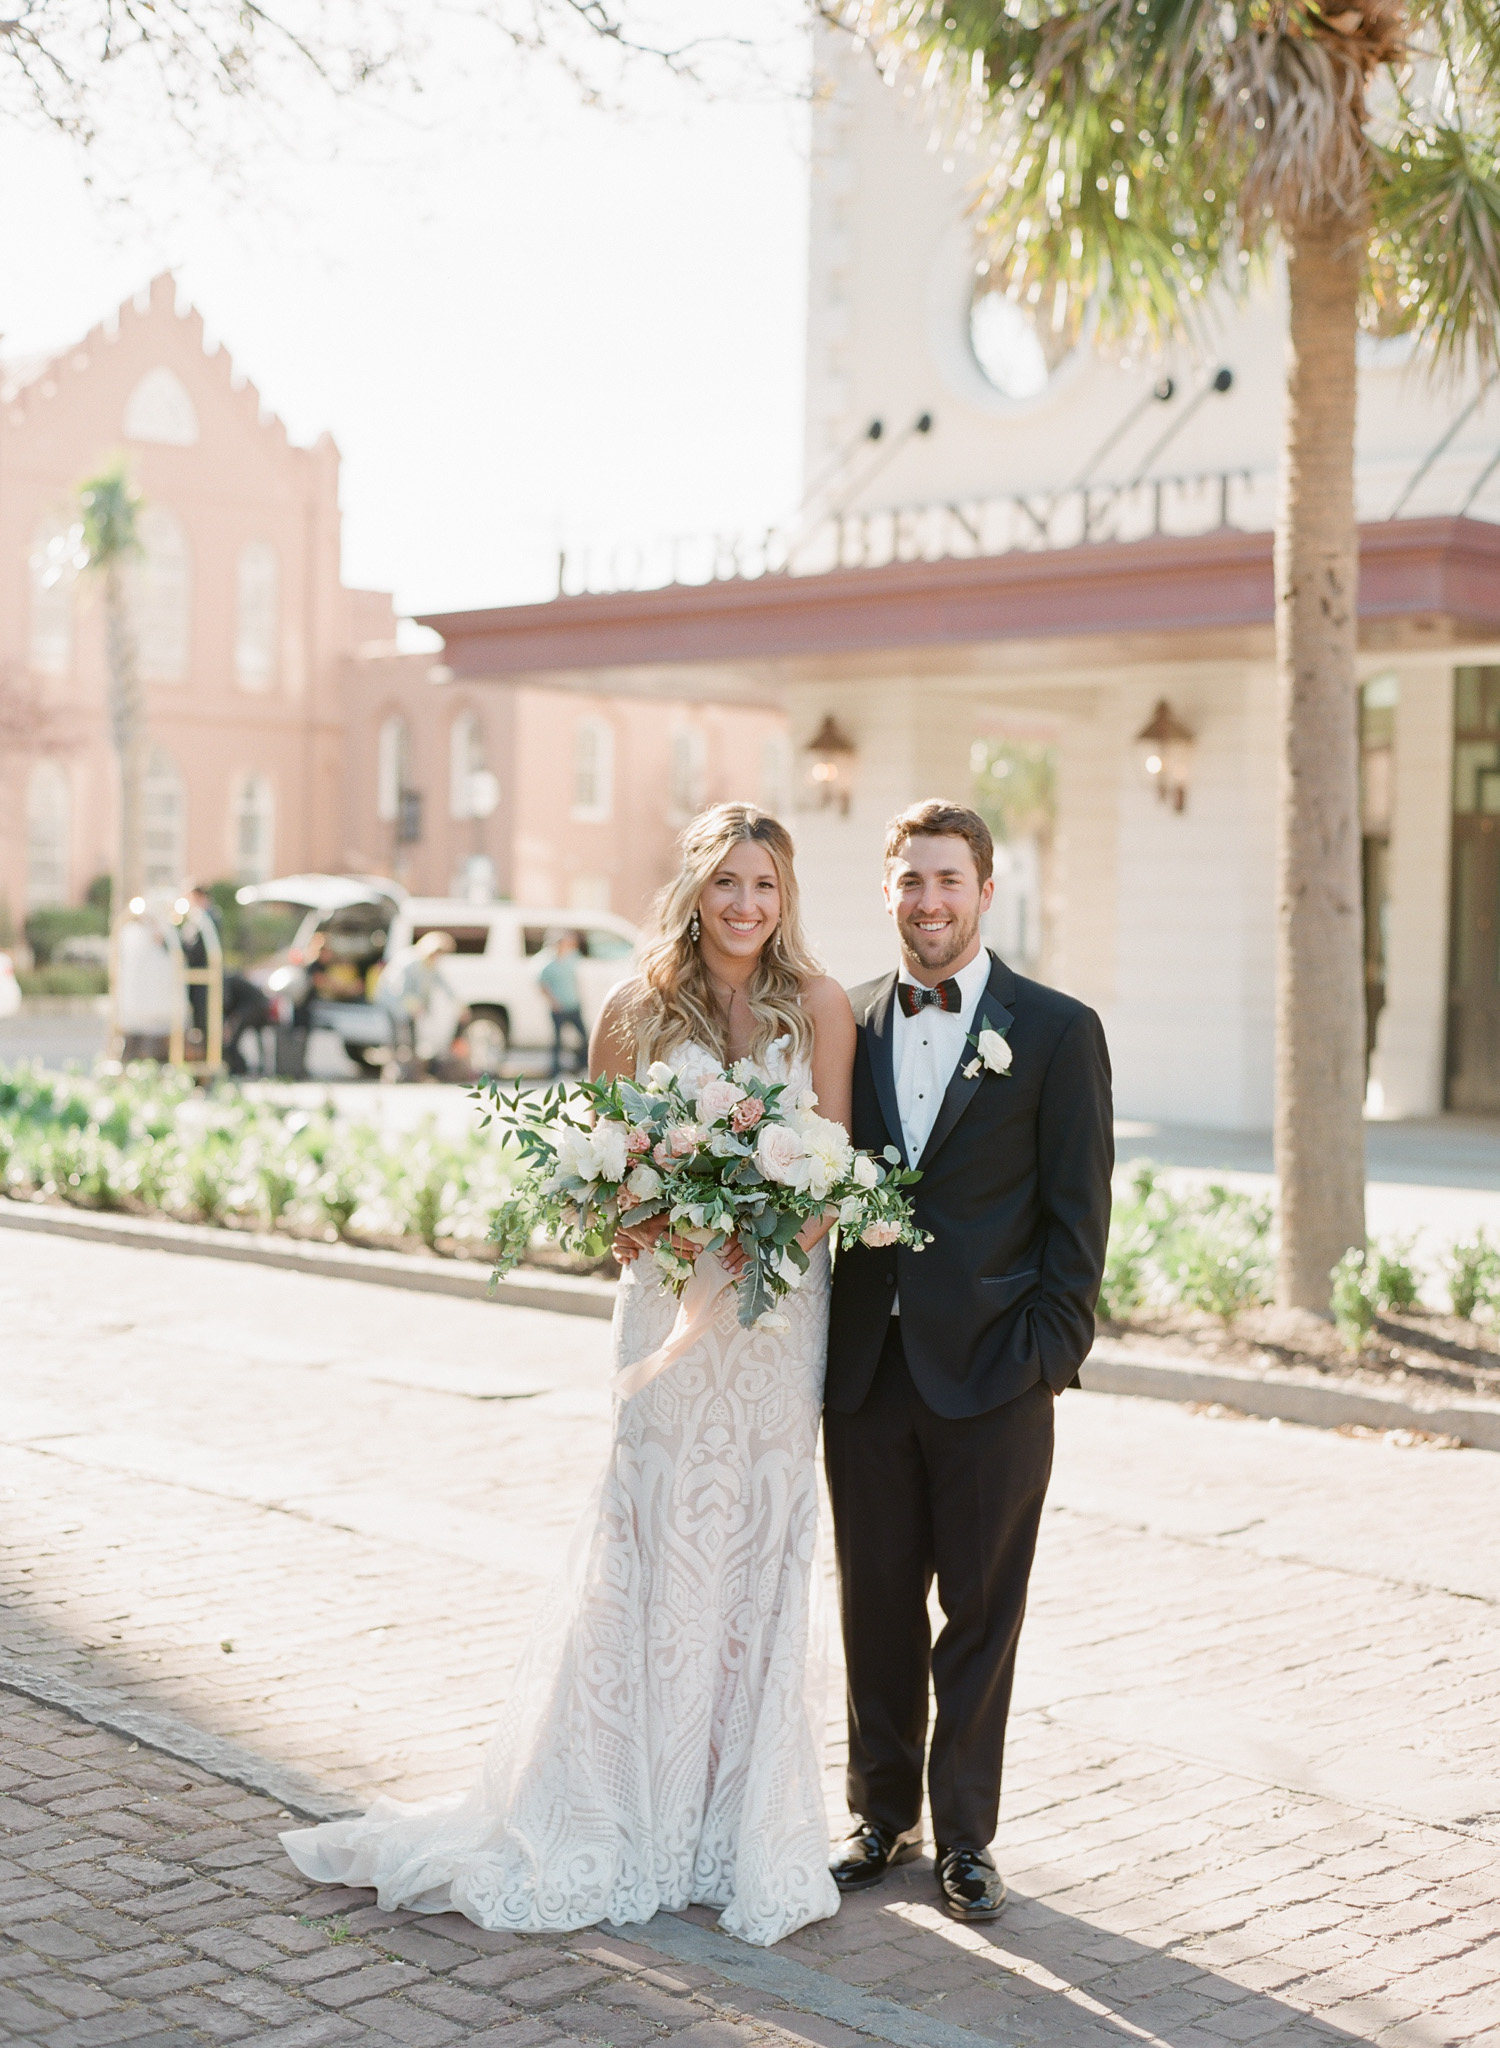 Charleston-Wedding-Hotel-Bennett-77.jpg